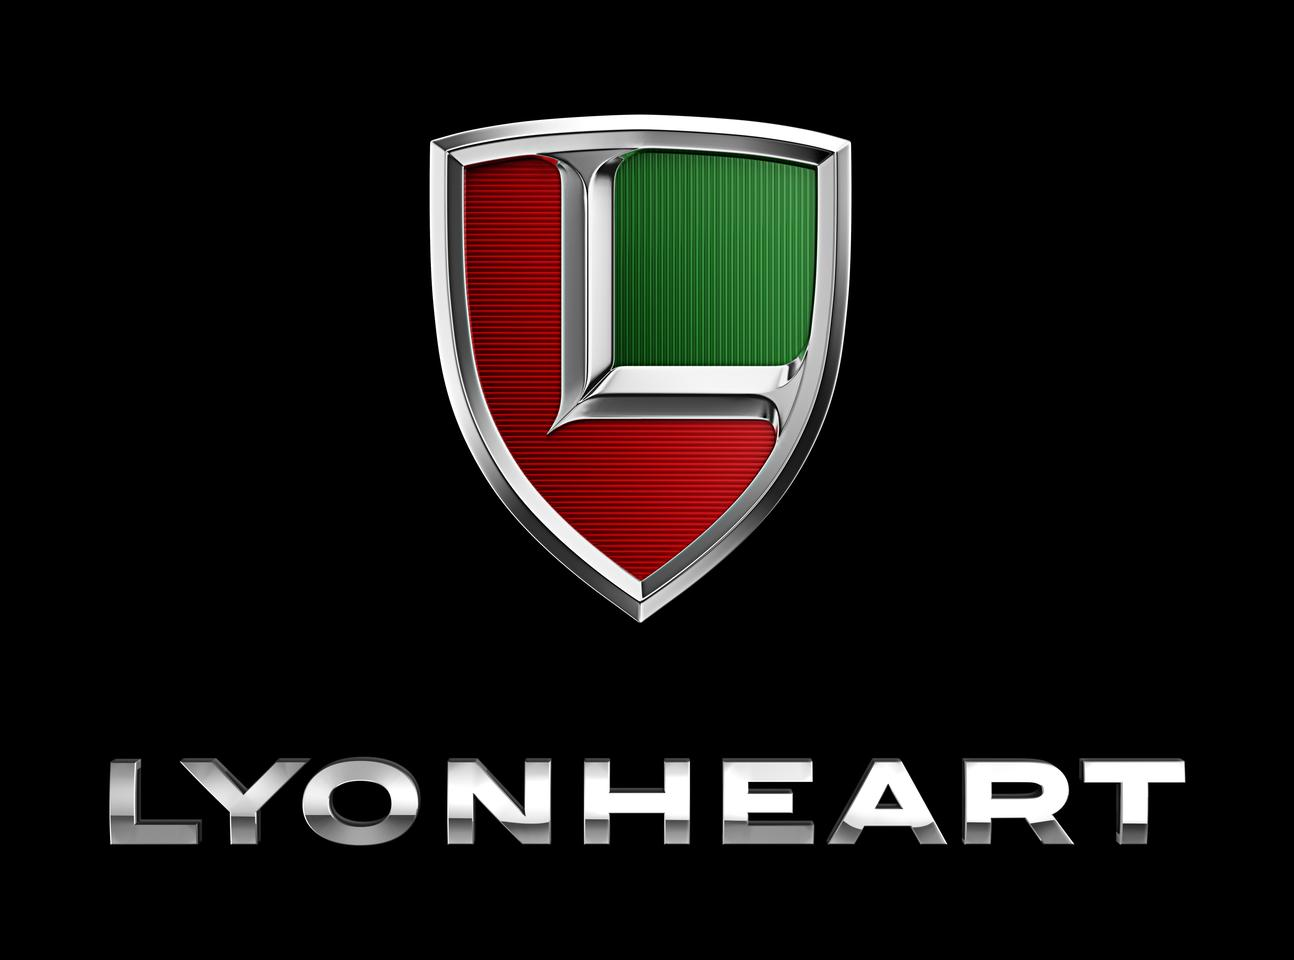 The Lyonheart logo